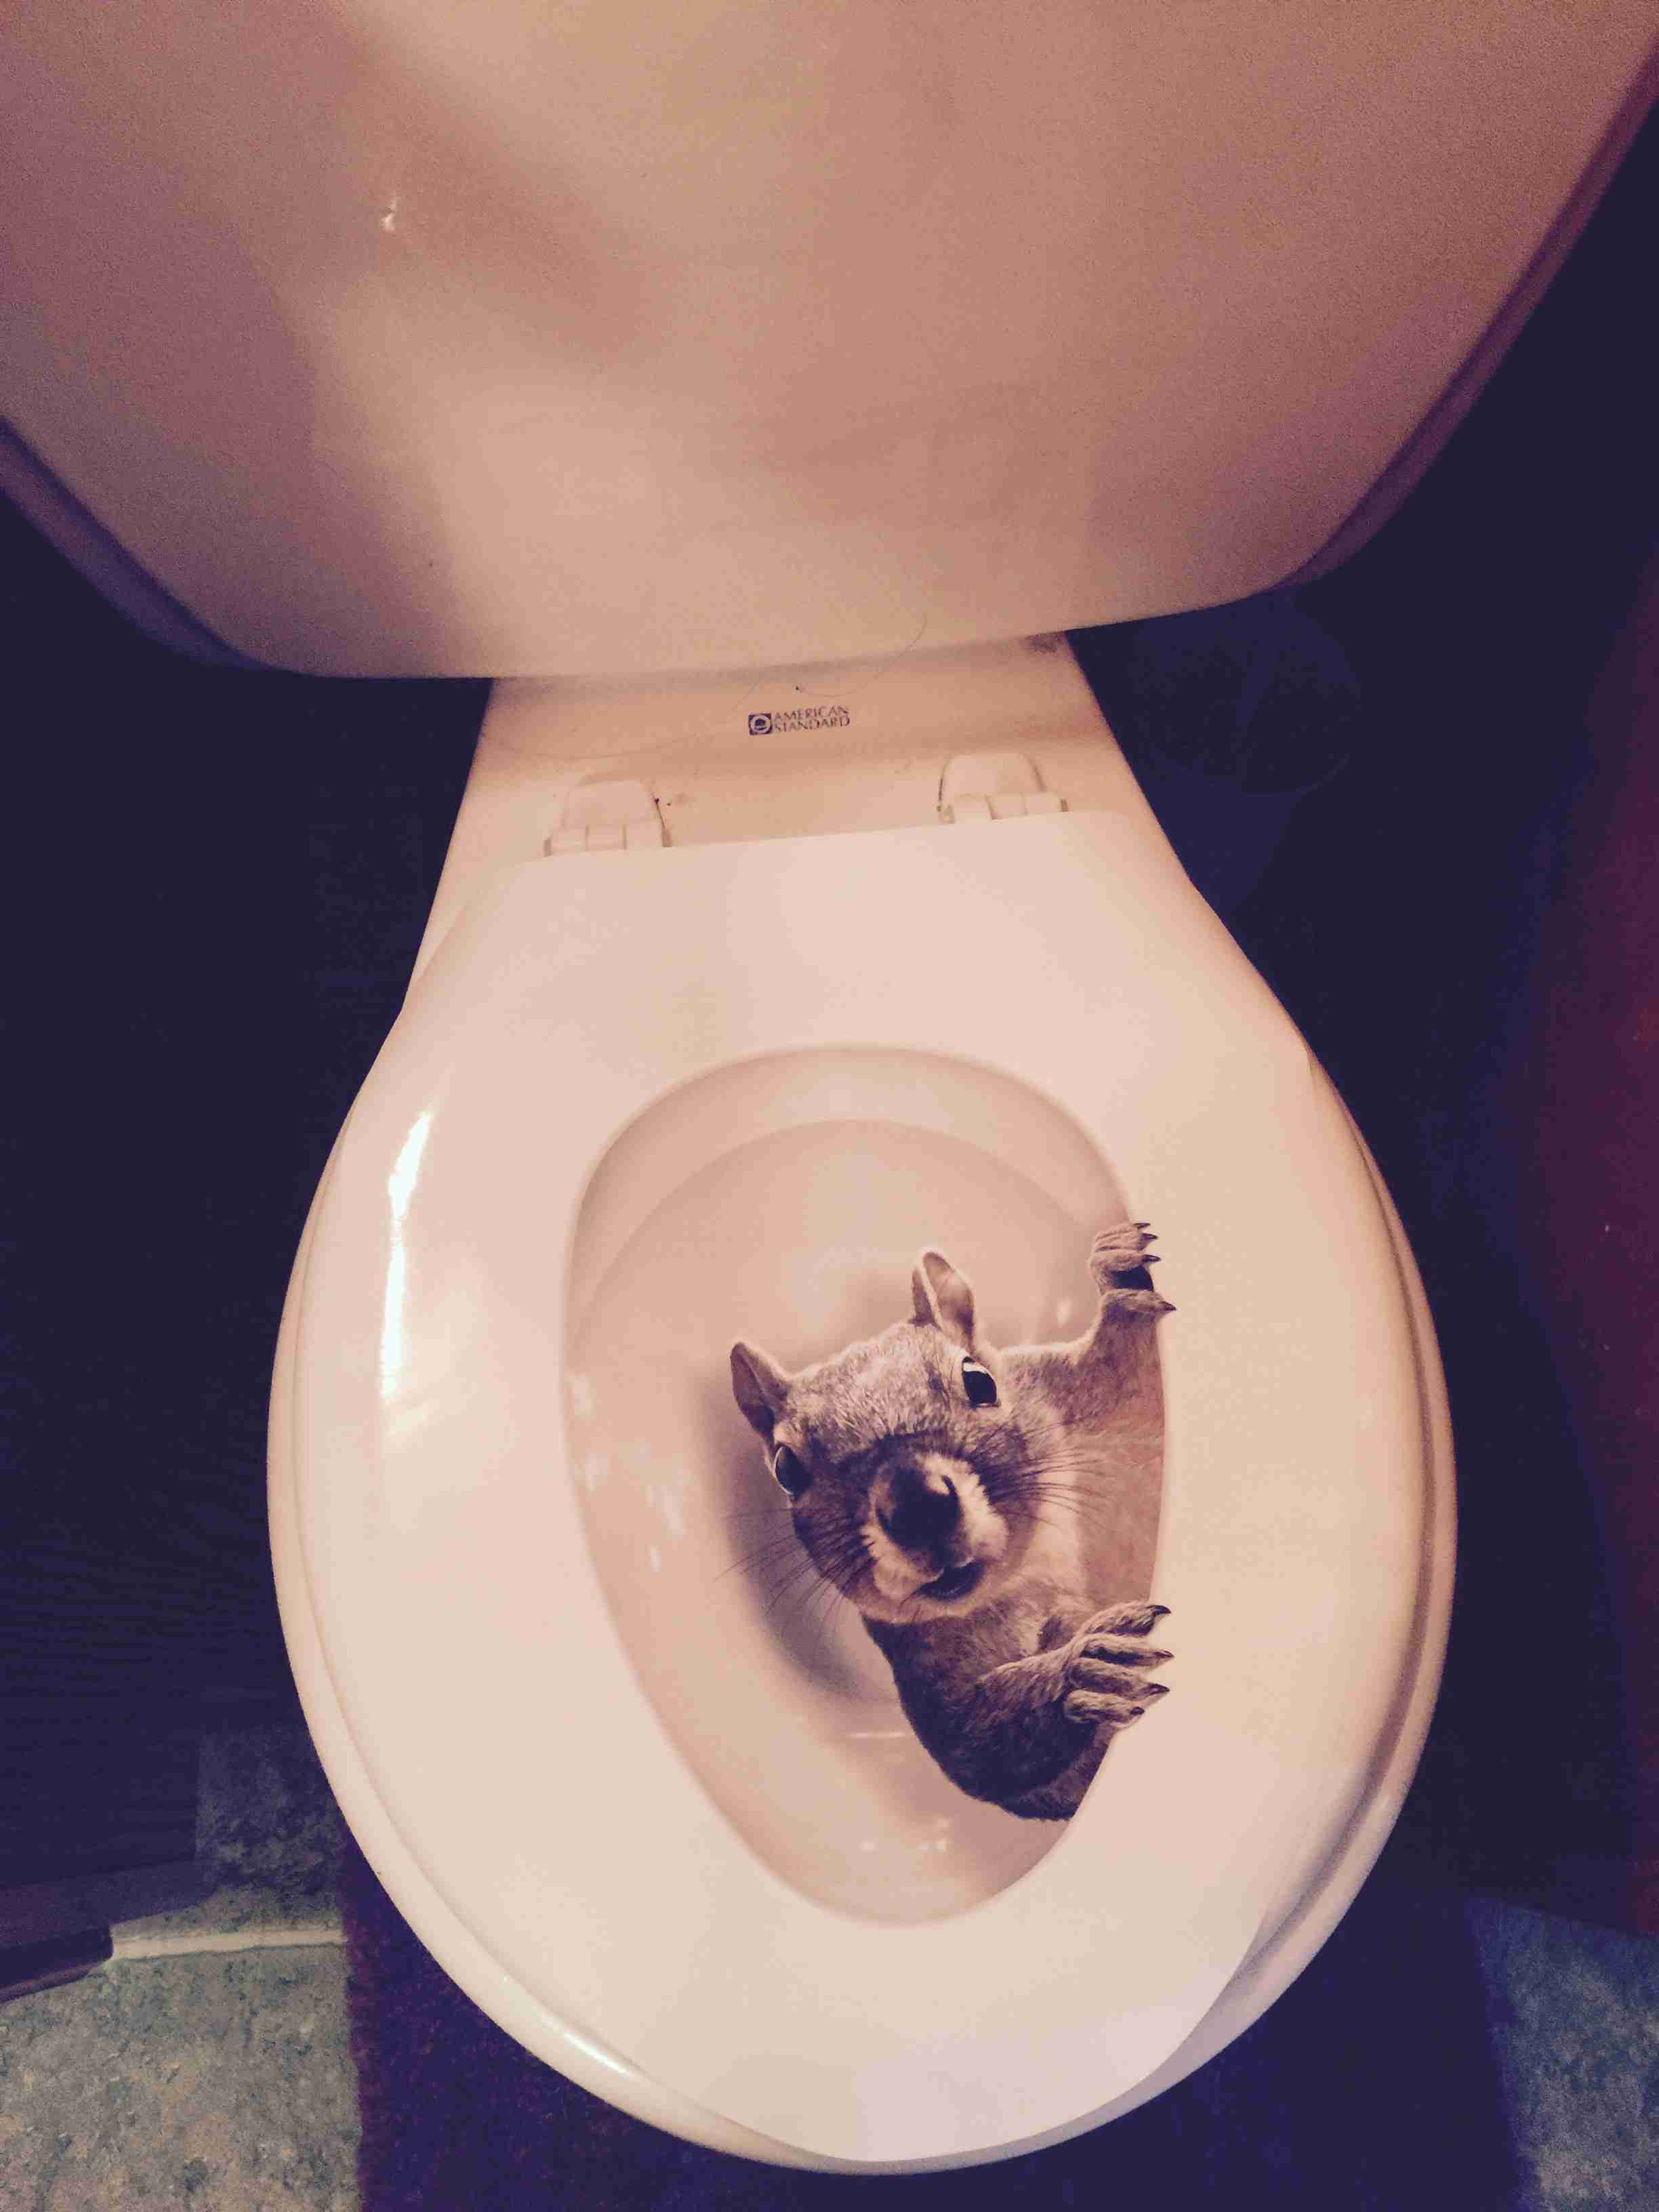 Squirrel Toilet Seat Cover - Random Funny Things